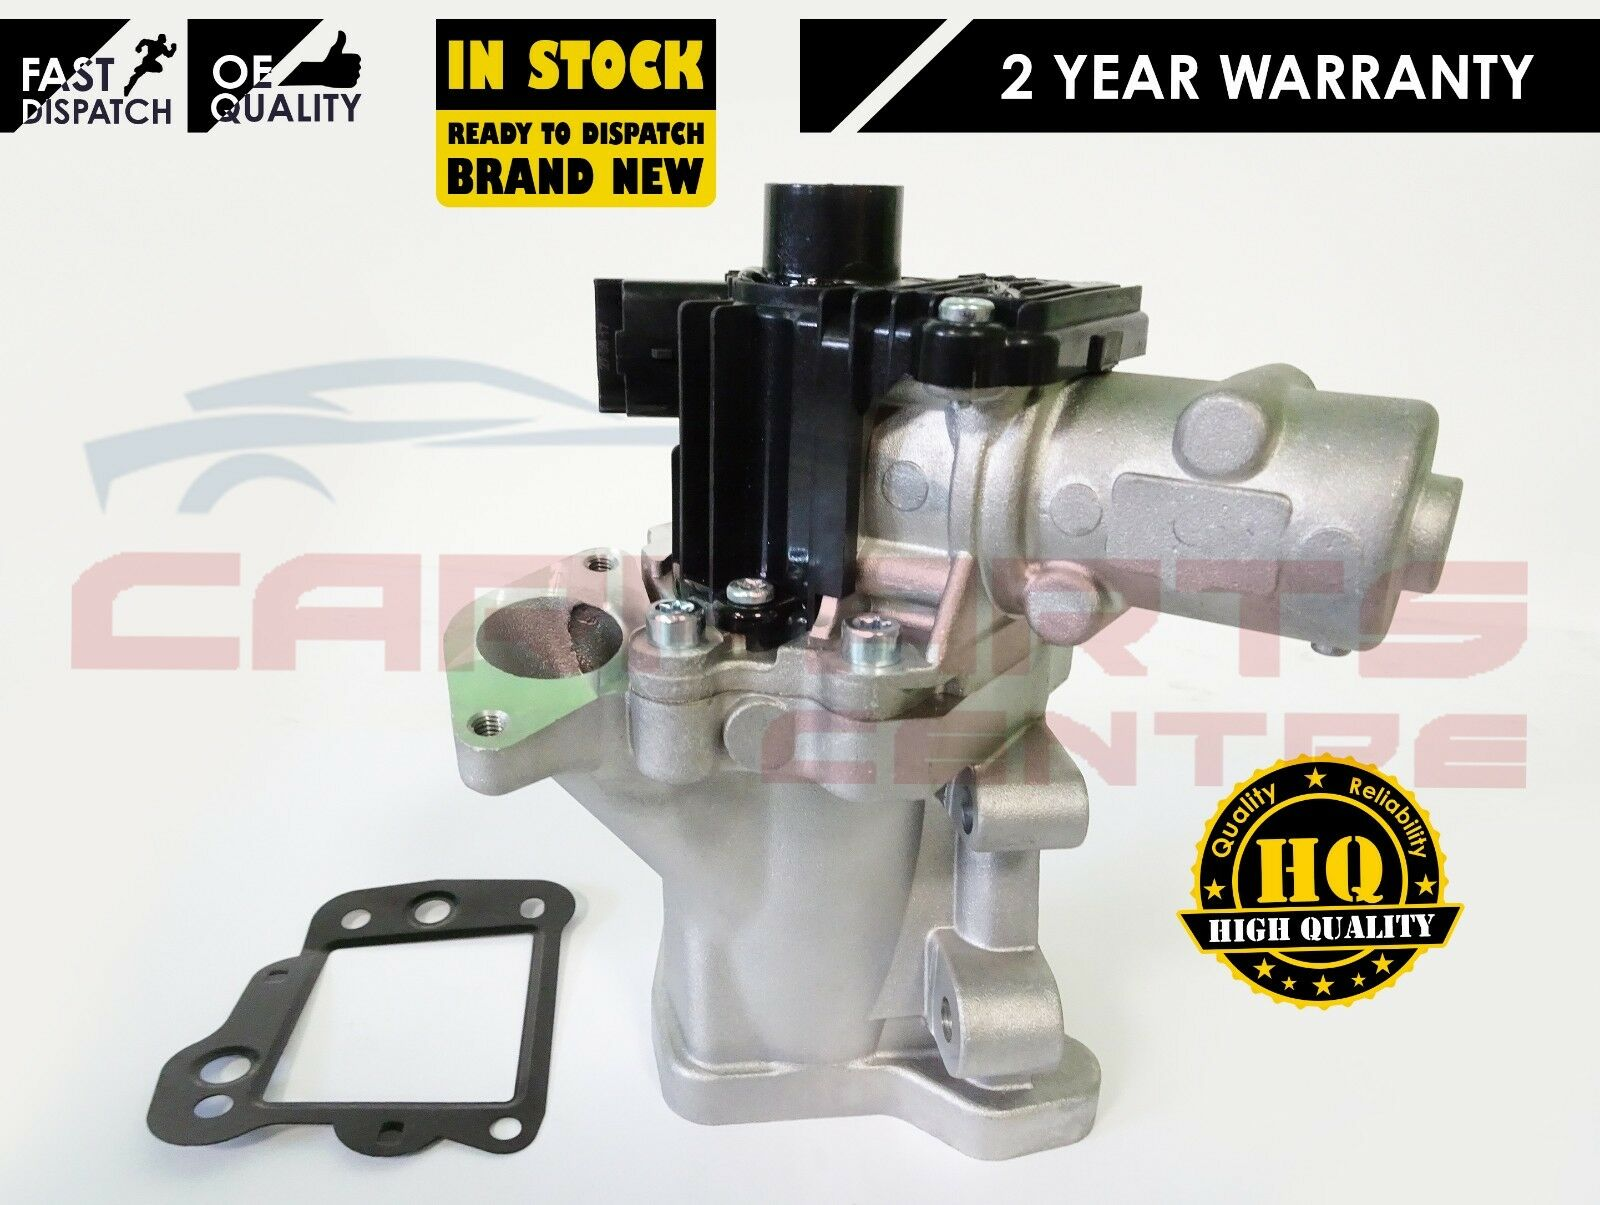 Details about FOR LAND ROVER FREELANDER 2 L359 RANGE ROVER EVOQUE L538 2 2  DIESEL EGR VALVE